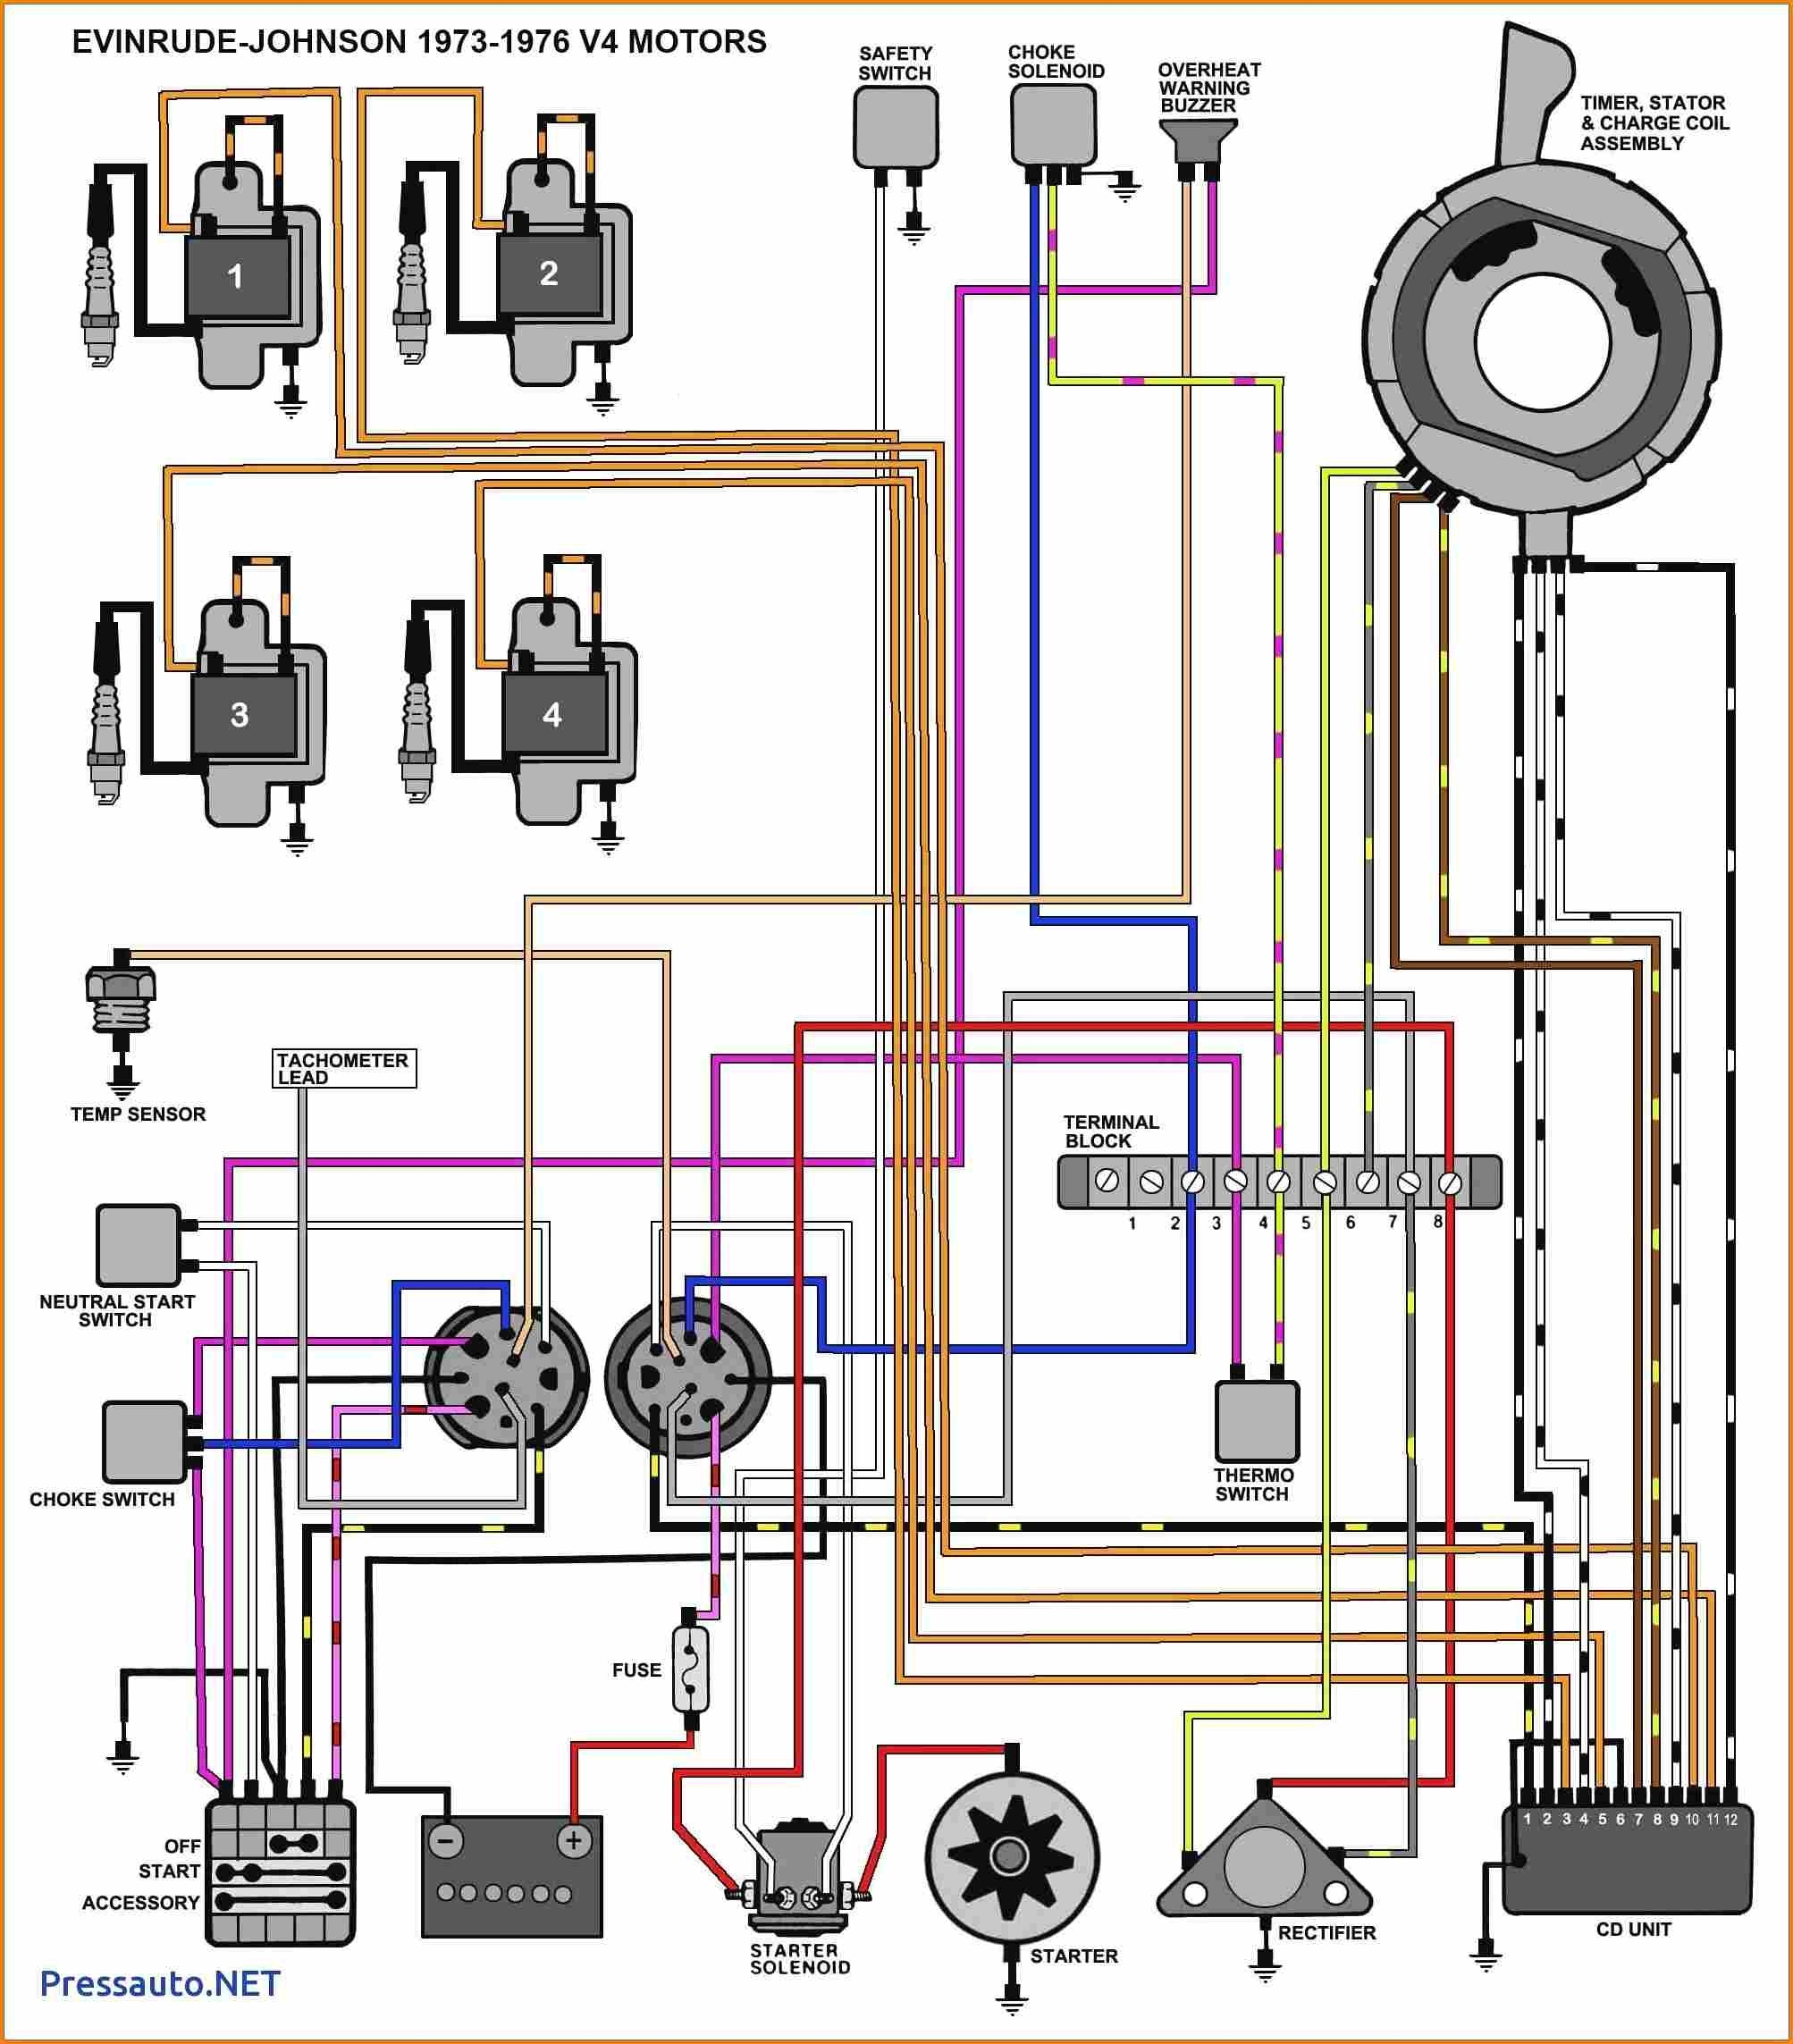 1998 40 Hp Mercury Wiring Diagram FULL HD Quality Version Wiring Diagram -  WIRING-LEIF.SGW09ALTLIGEN.DE | 1998 40 Hp Mercury Wiring Diagram |  | Diagram Database - SGW09ALTLIGEN.DE